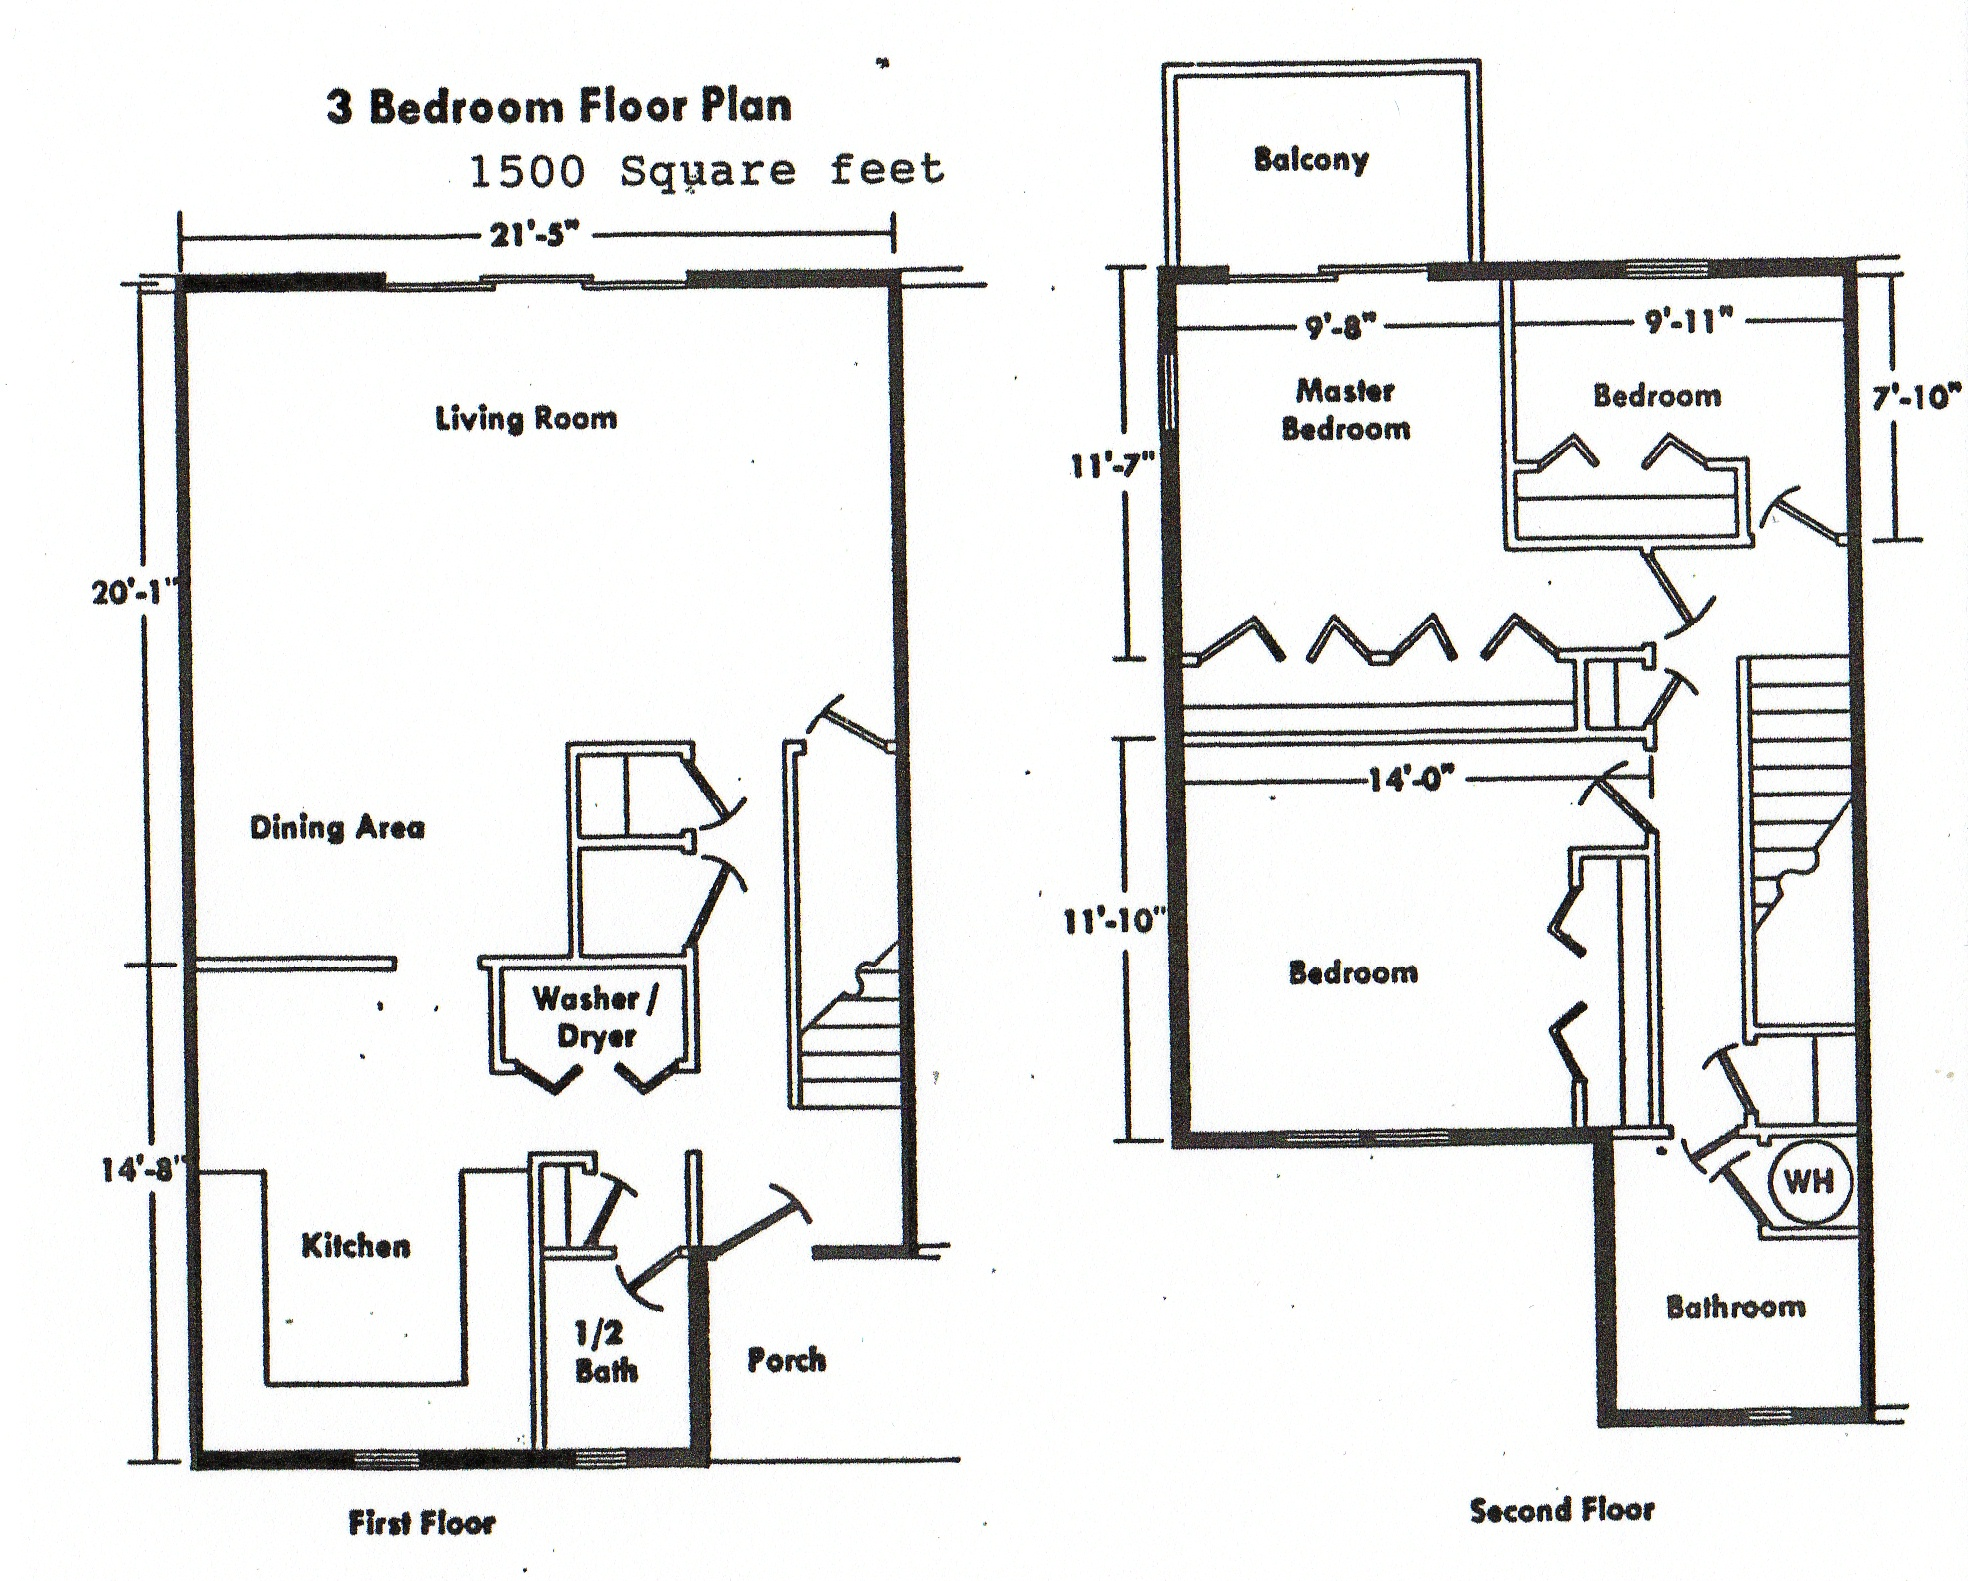 Home ideas for Three bedroom house layout